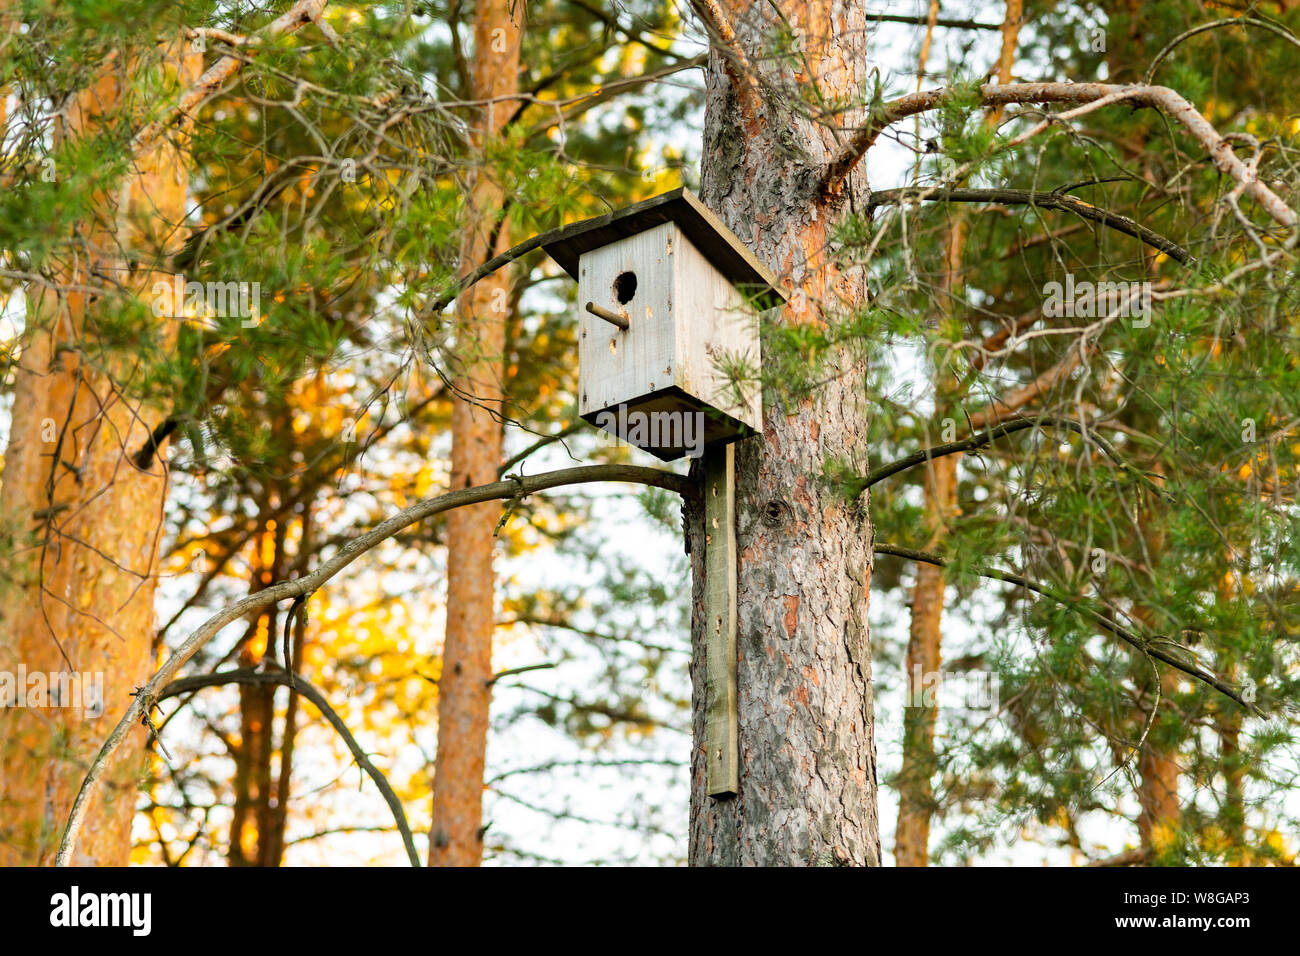 Birdhouse on a pine in the forest. Simple birdhouse design ... on modern birdhouse designs, mosaic birdhouse designs, cute birdhouse designs, exotic birdhouse designs, awesome birdhouse designs, unusual birdhouse designs, interesting birdhouse designs, whimsical birdhouse designs, ornate birdhouse designs, creative birdhouse designs,